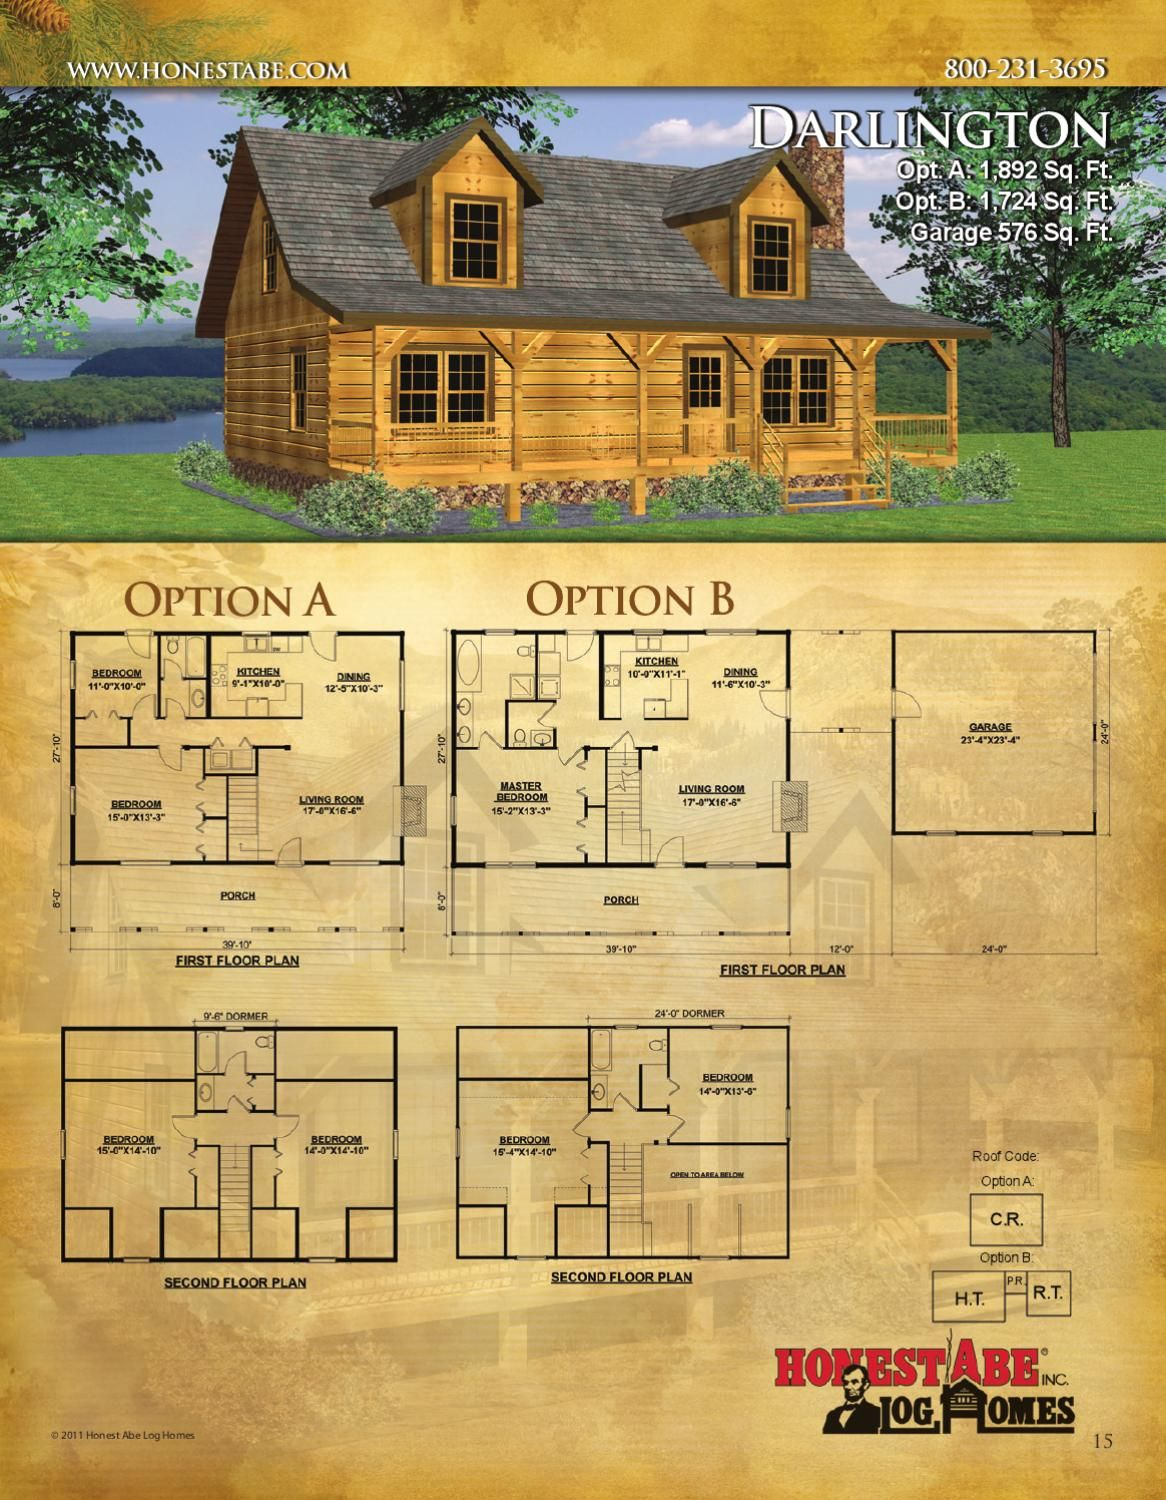 Honest Abe Log Homes designs, manufactures and builds energy-efficient,  custom log homes, log cabins and… | Log home floor plans, House floor  plans, Log cabin plans